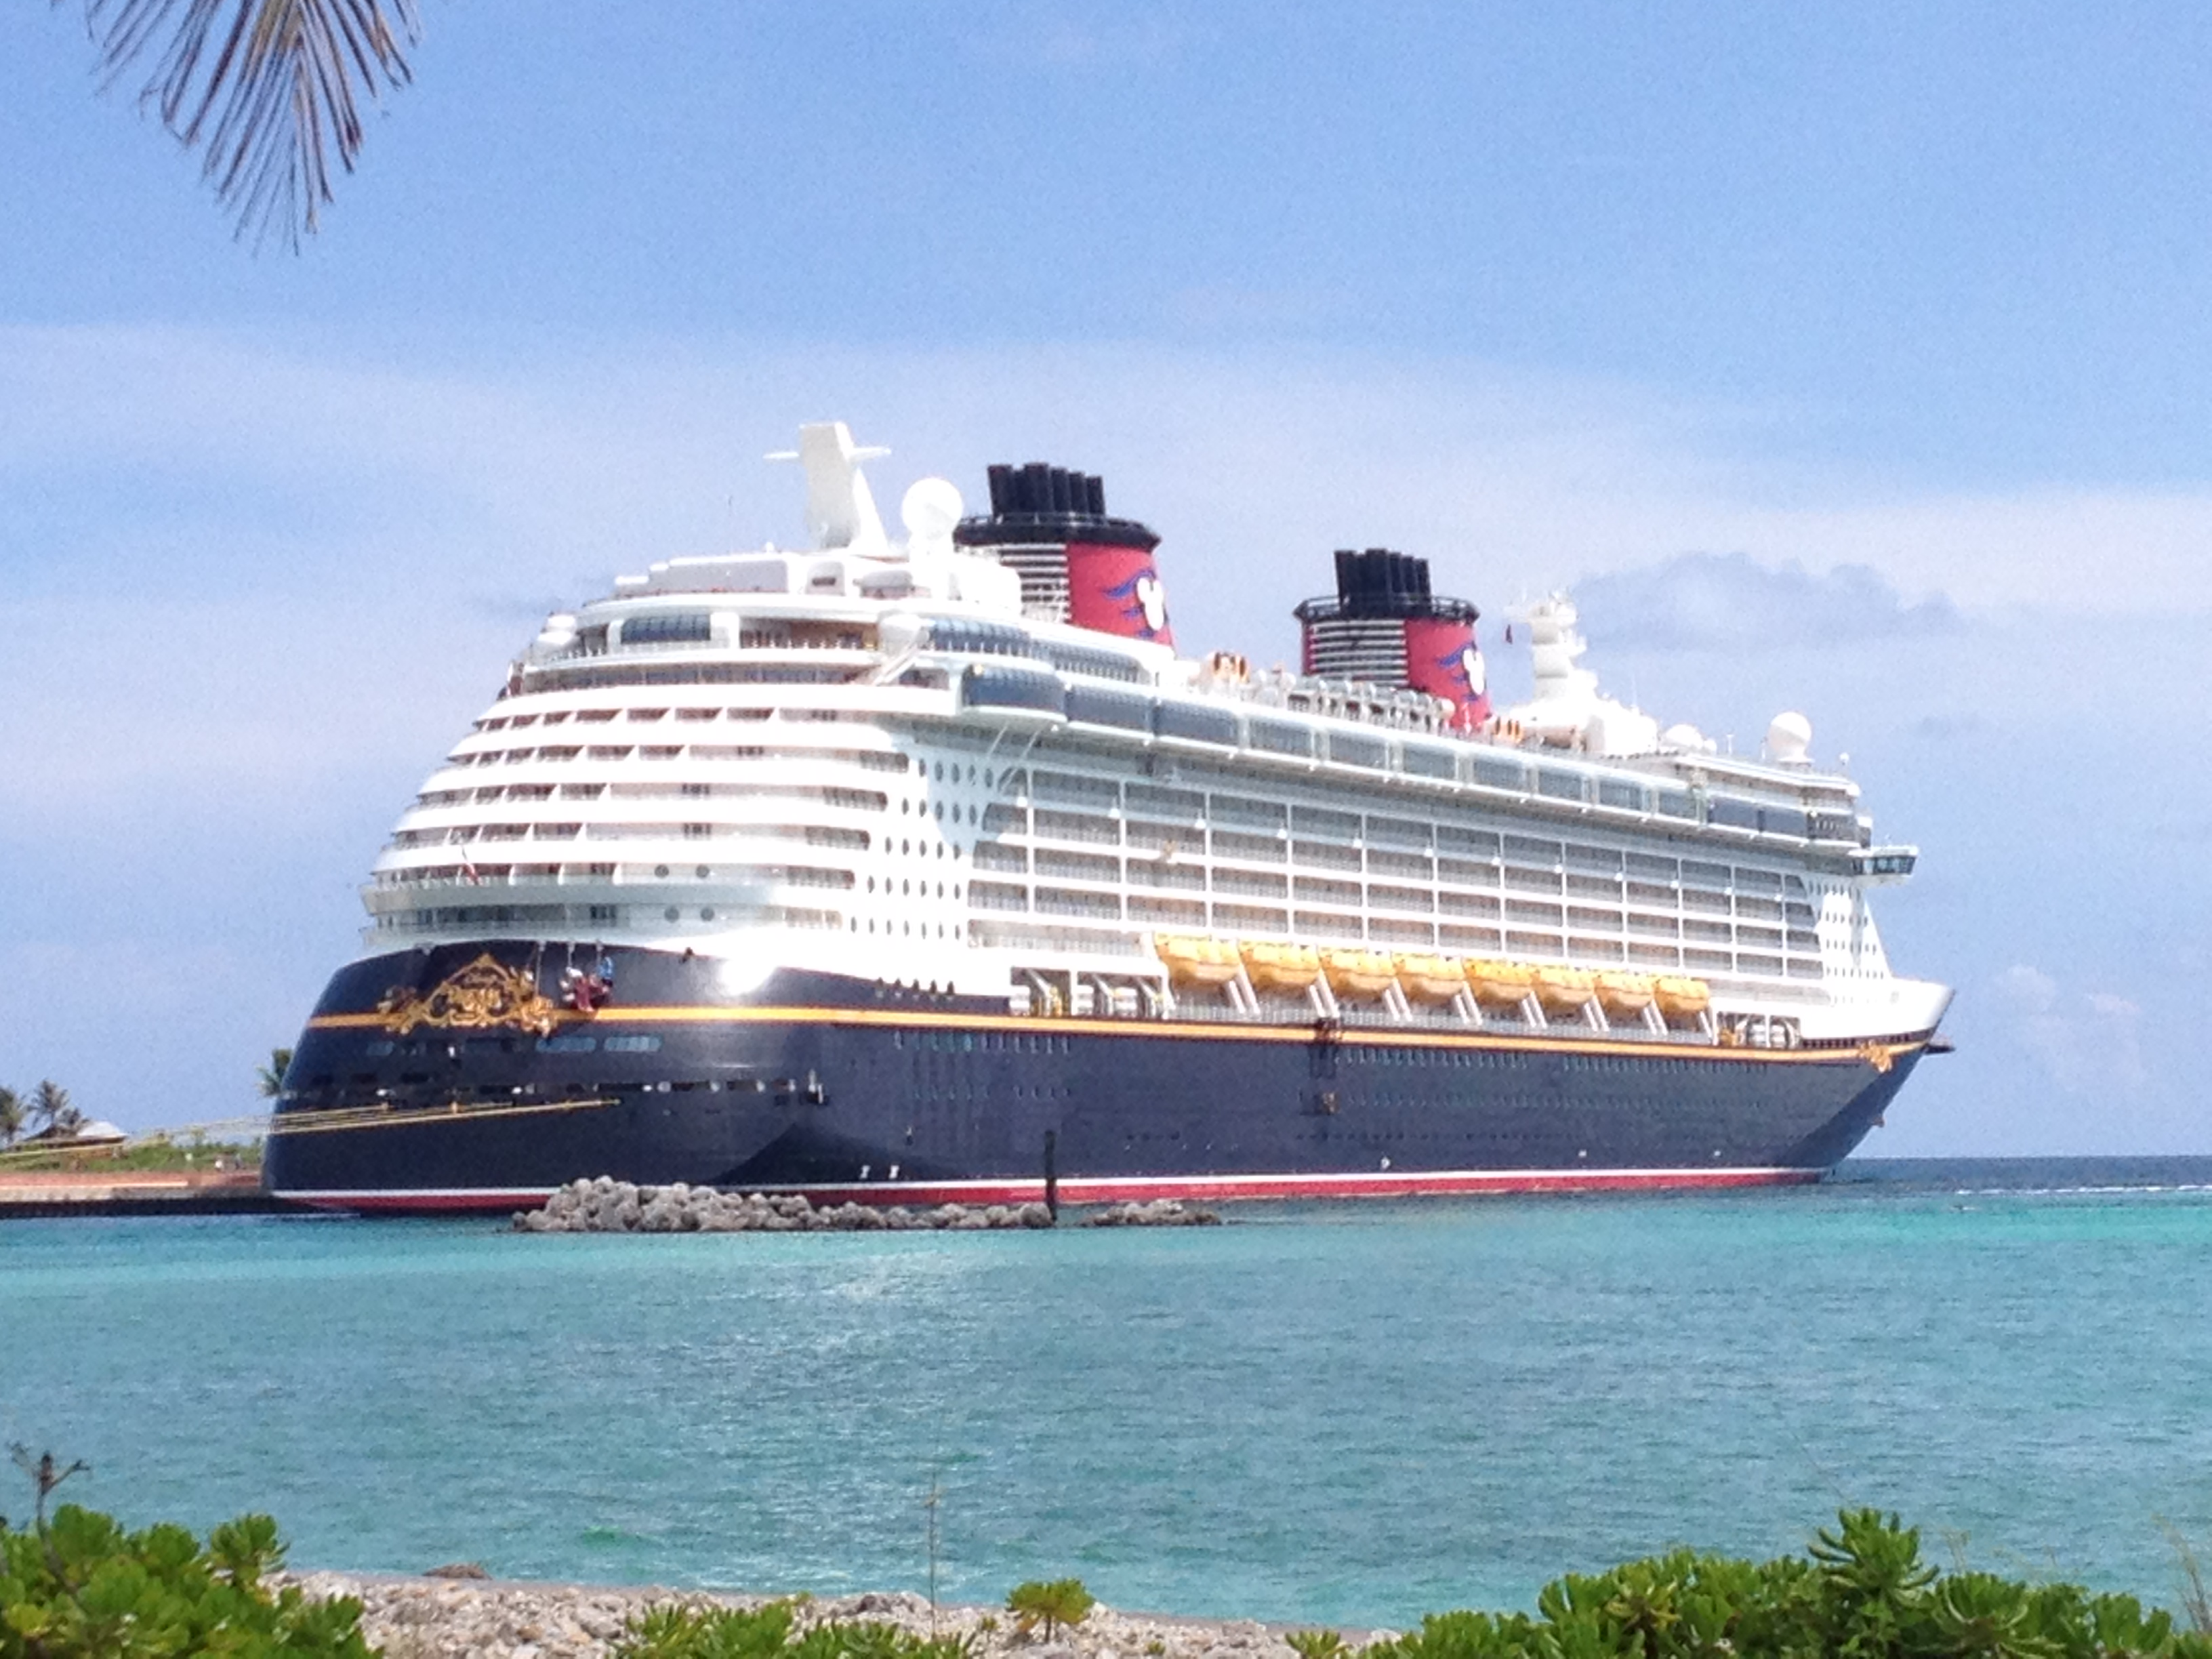 Cruising with Disney: Sailing on the Disney Dream